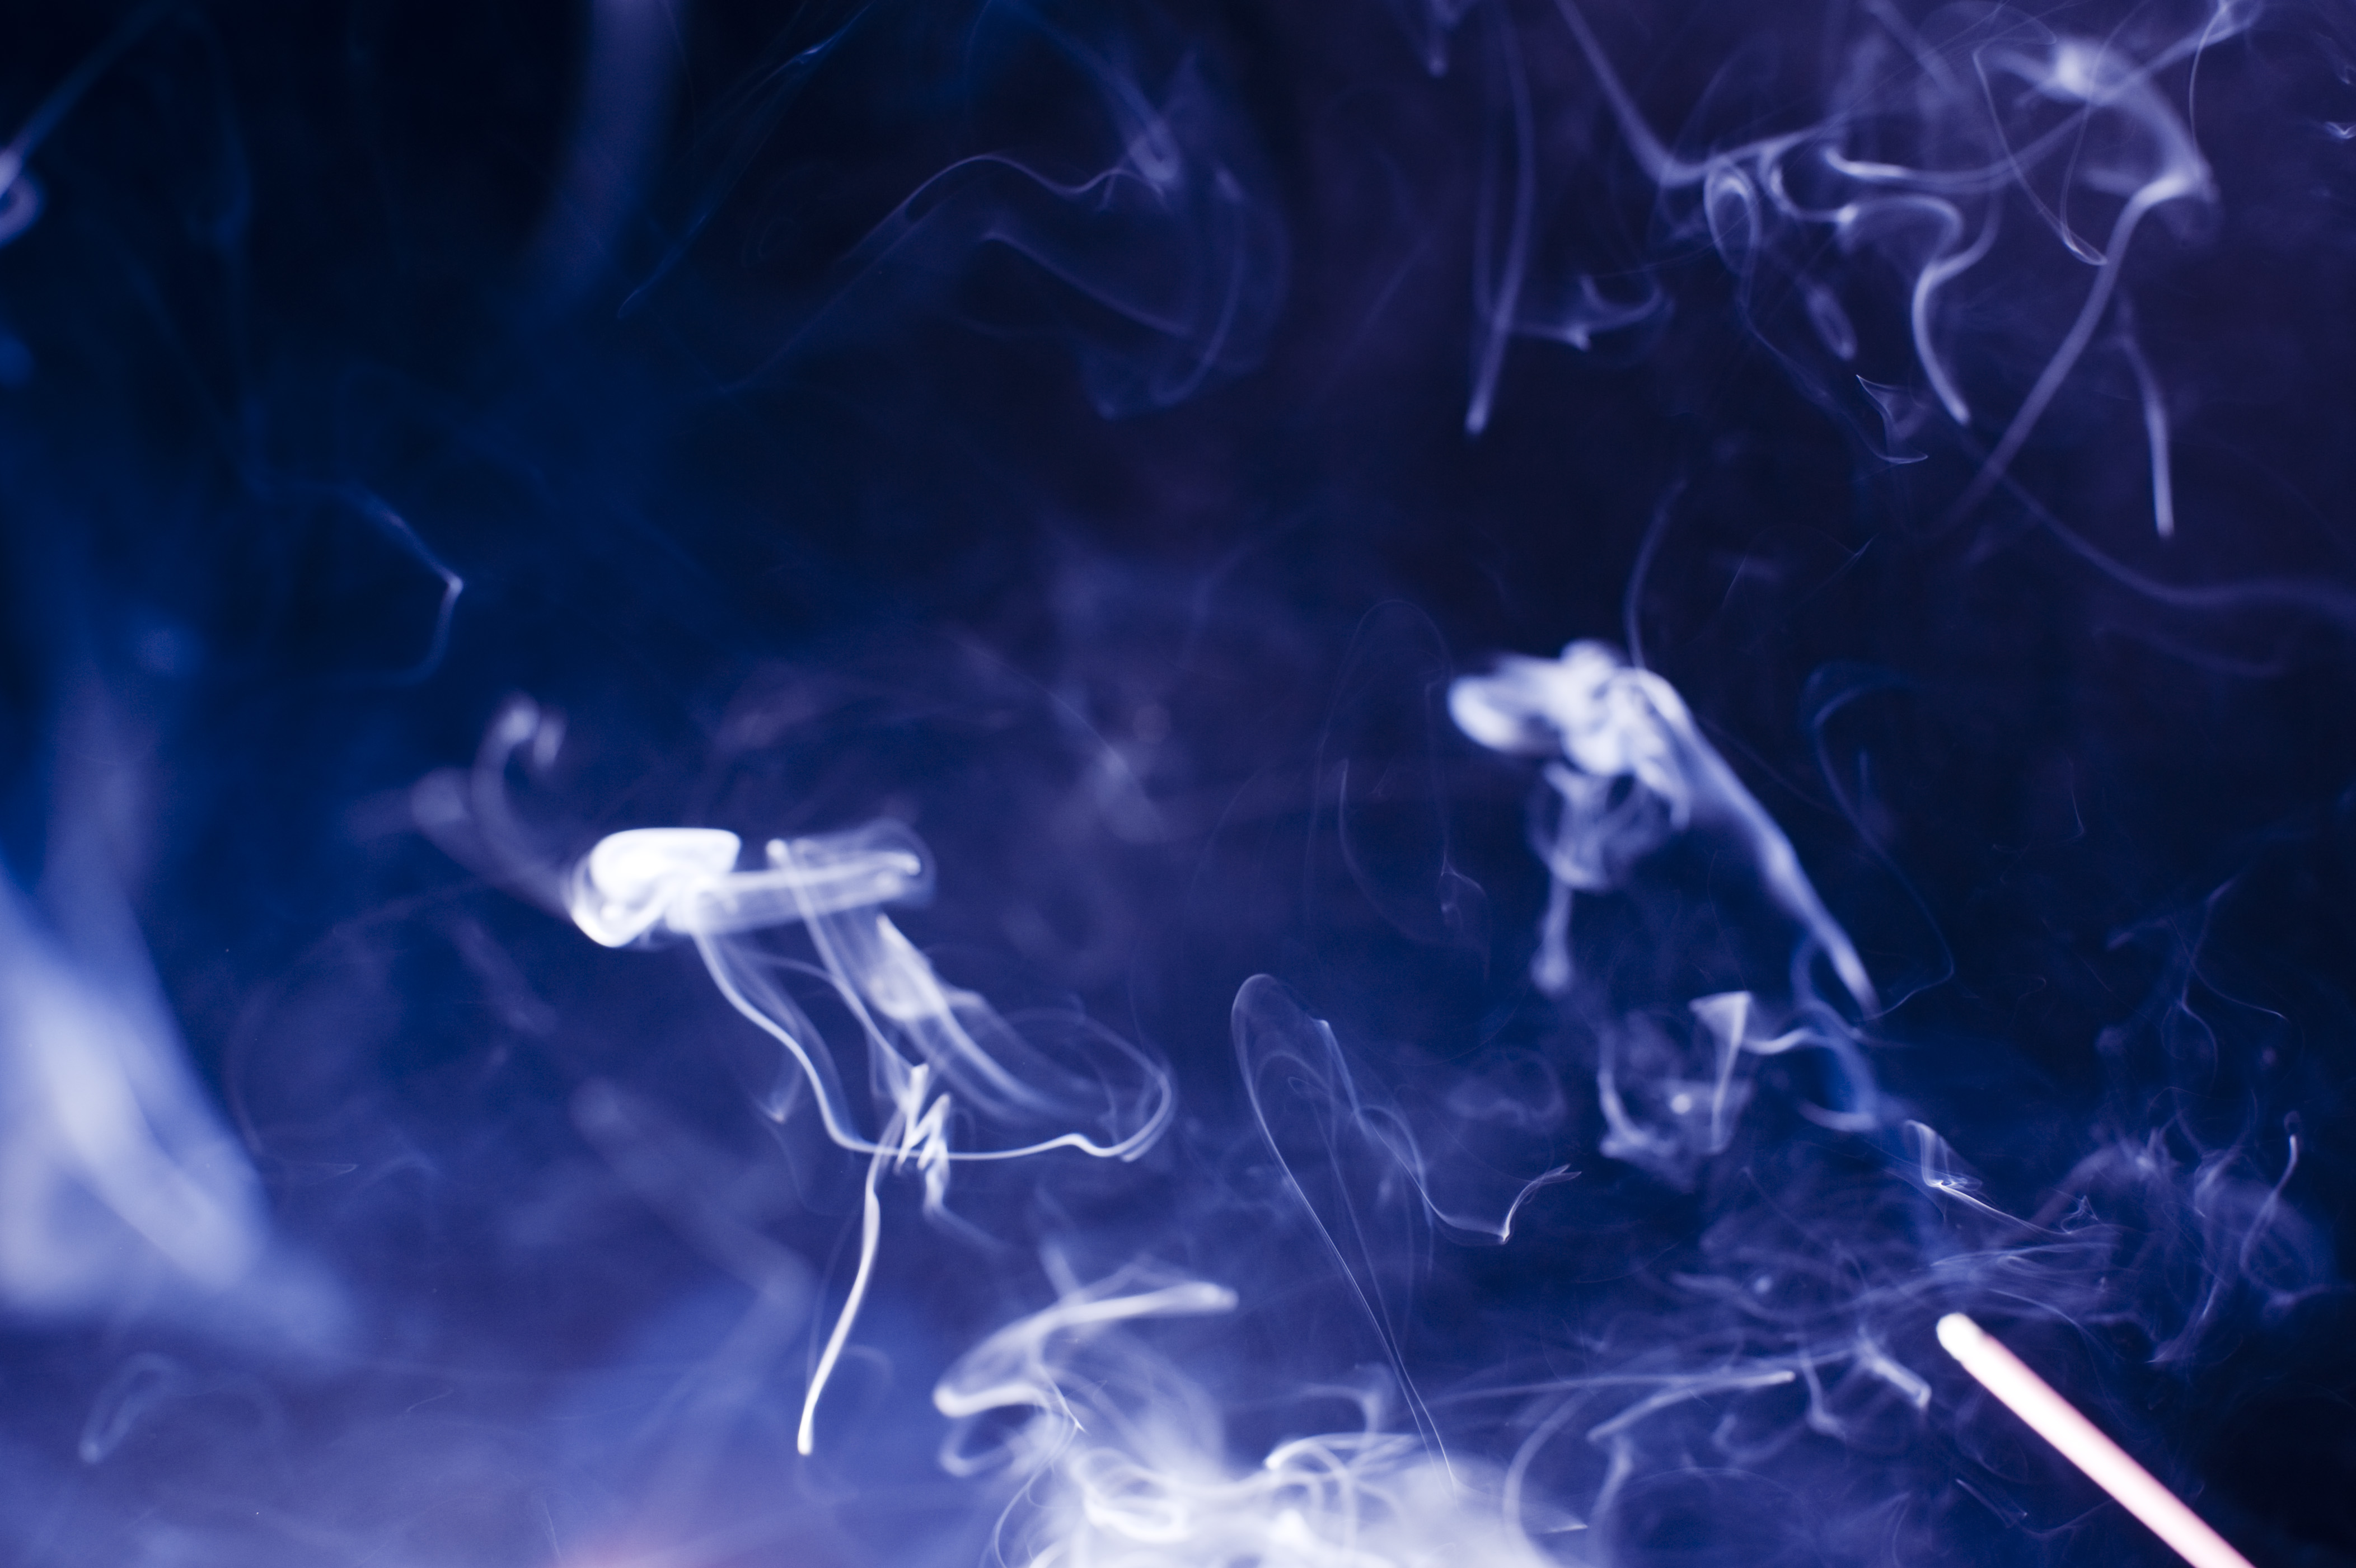 smoke shapes   Free backgrounds and textures   Cr103 com